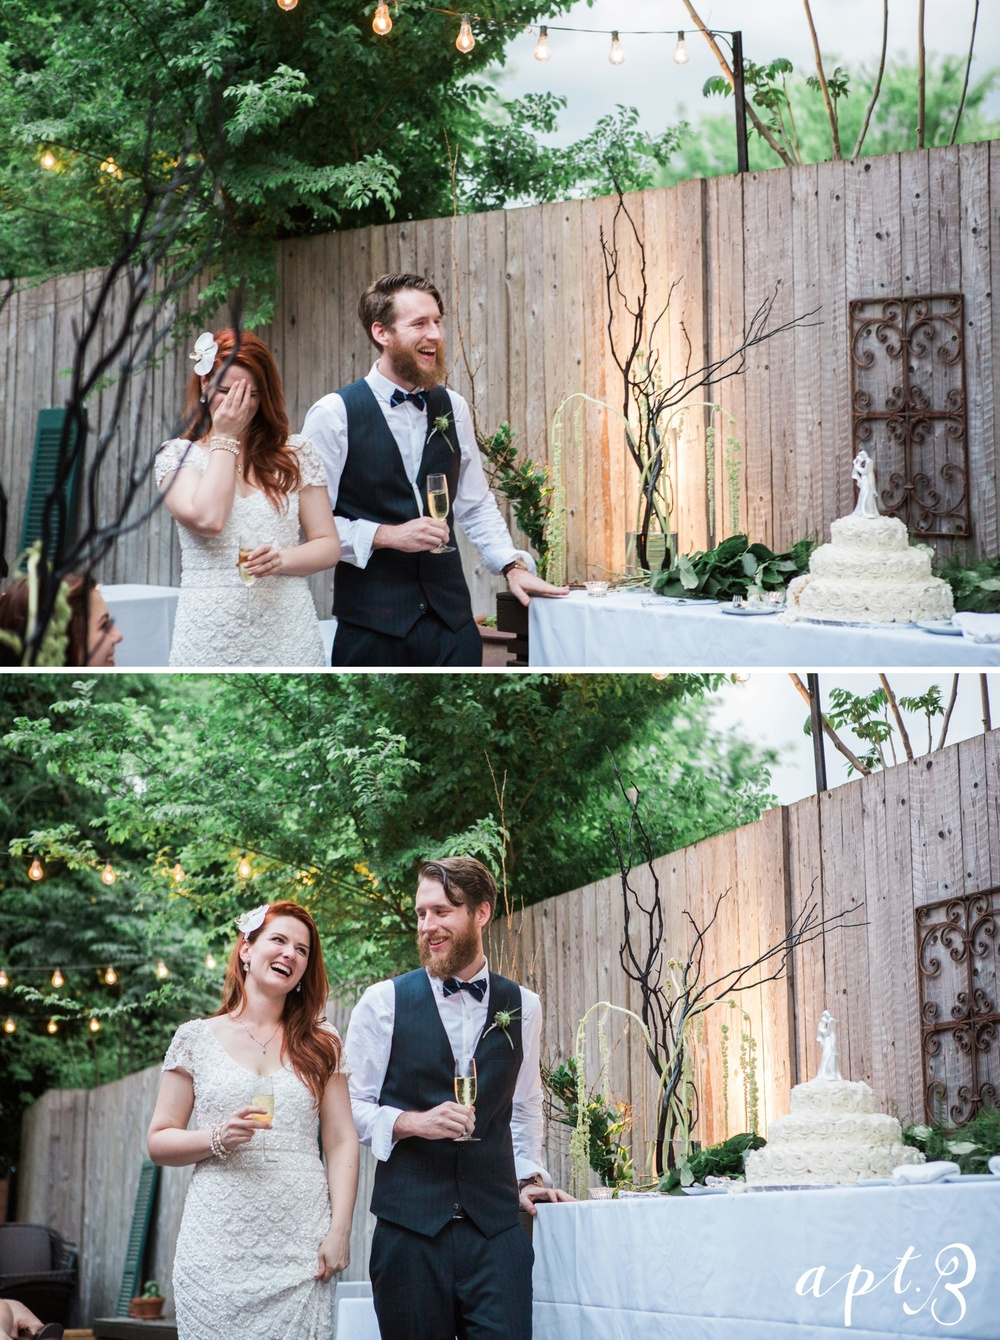 AptBPhotography_SavannahWedding_ChaBella-127.jpg